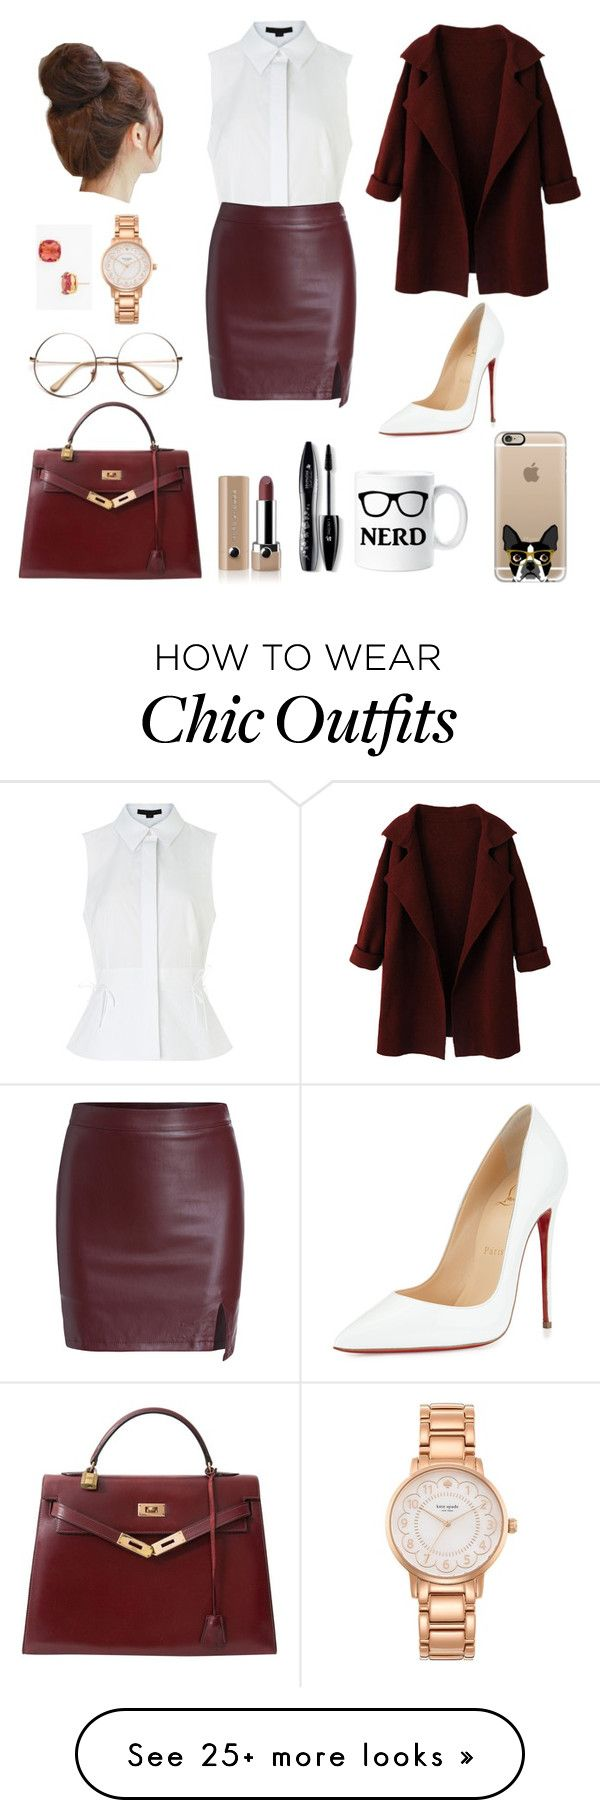 """""""Chic Librarian"""" by eliza-abedi on Polyvore featuring Kate Spade, Alexander Wang, Pin Show, WithChic, Christian Louboutin, Hermès, Casetify, Marc Jacobs, Lancôme and women's clothing"""